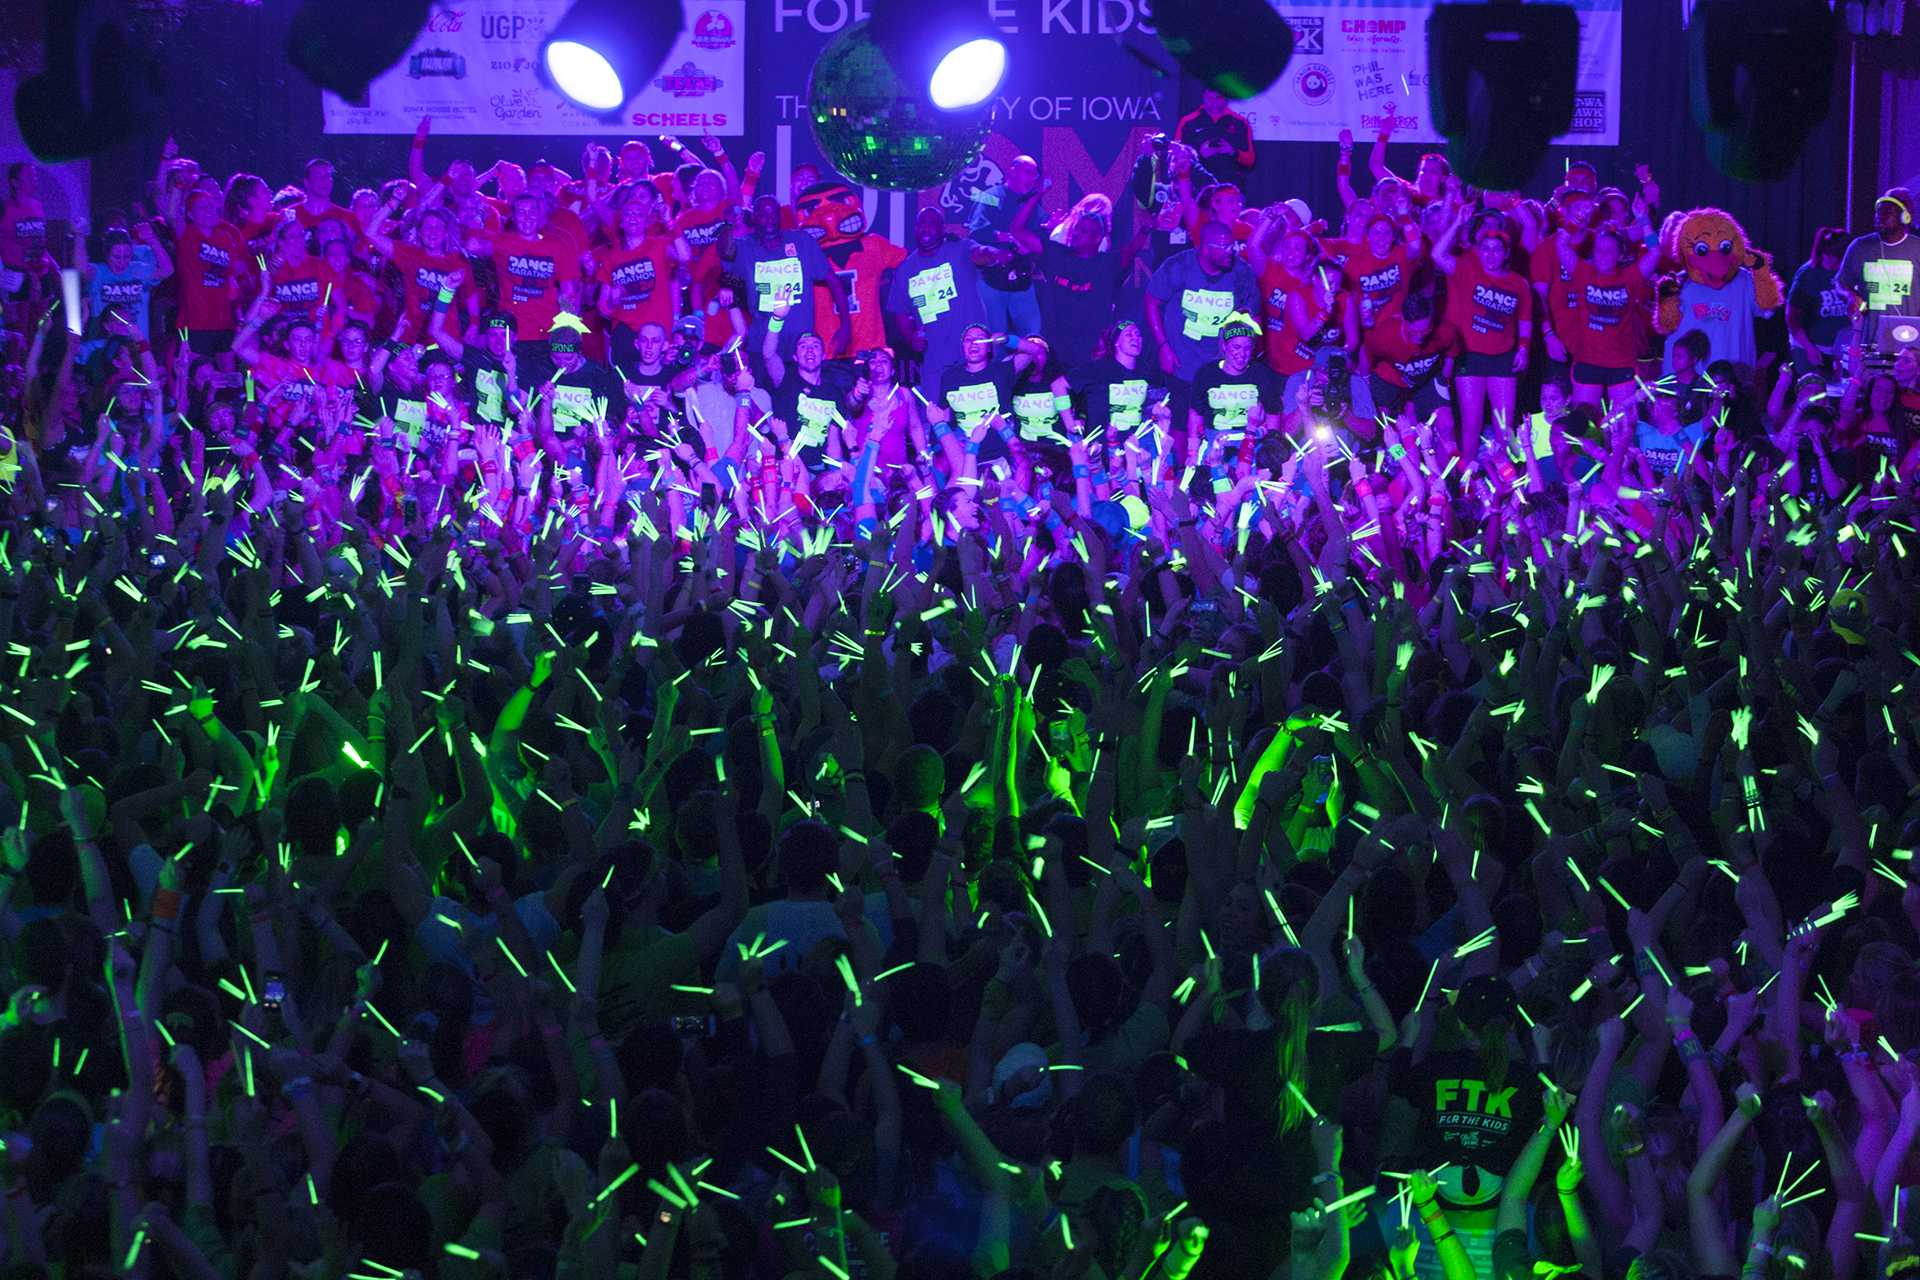 Dance Marathon wants to increase its impact by connecting with other campus organizations